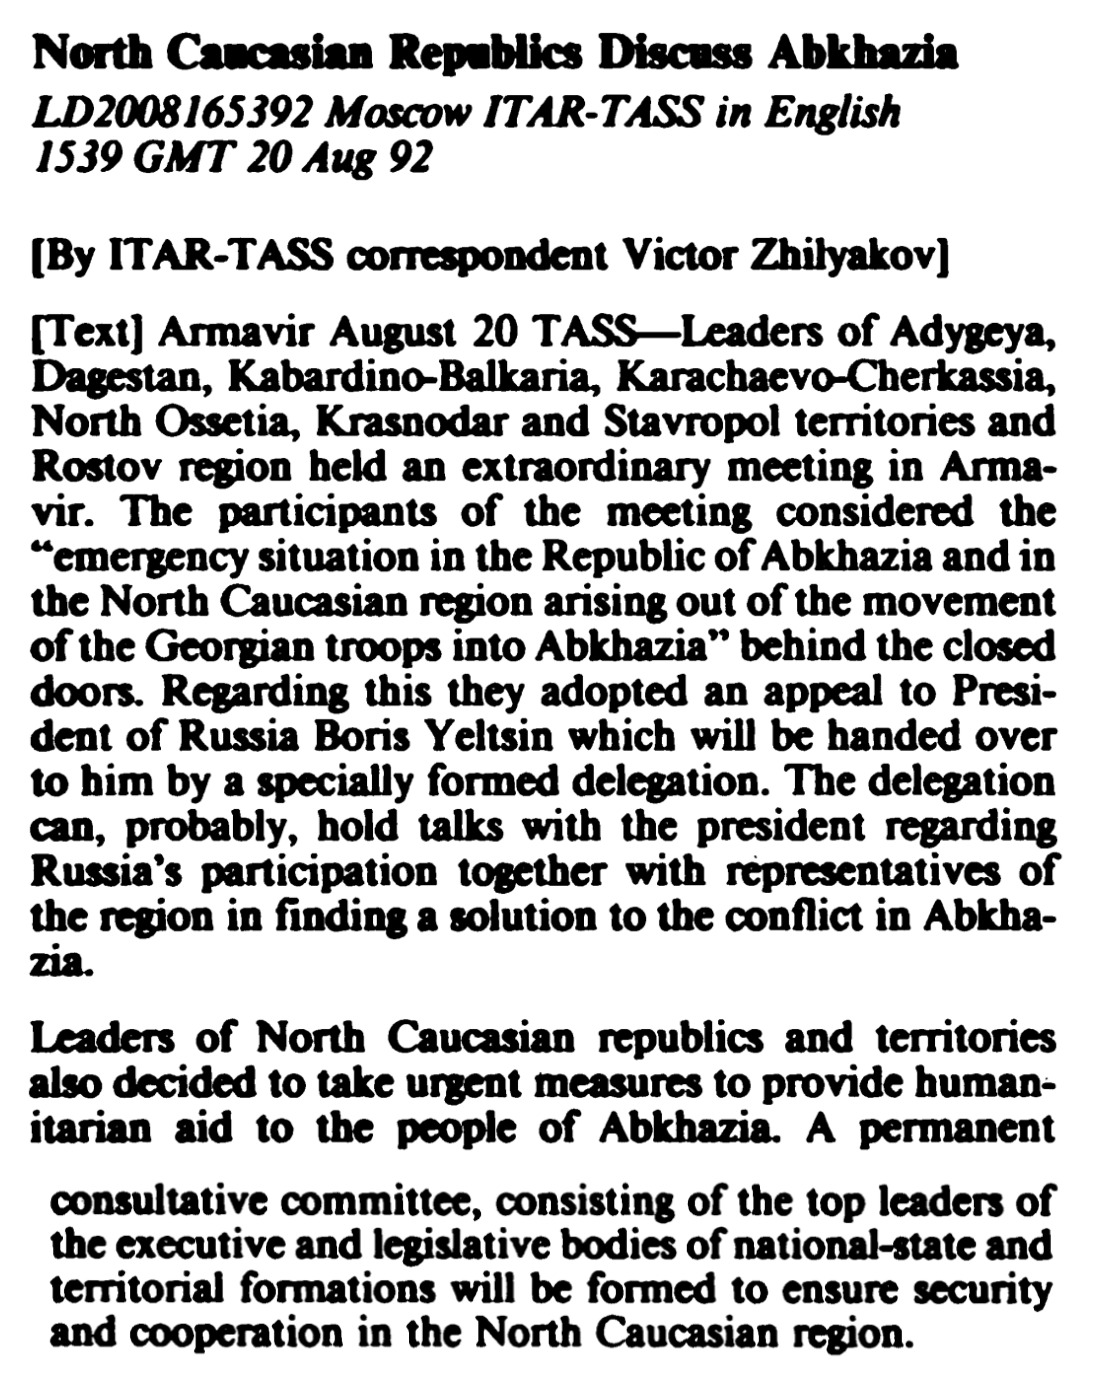 North Caucasian Republics Discuss Abkhazia  ITAR-TASS in English 15:39 GMT